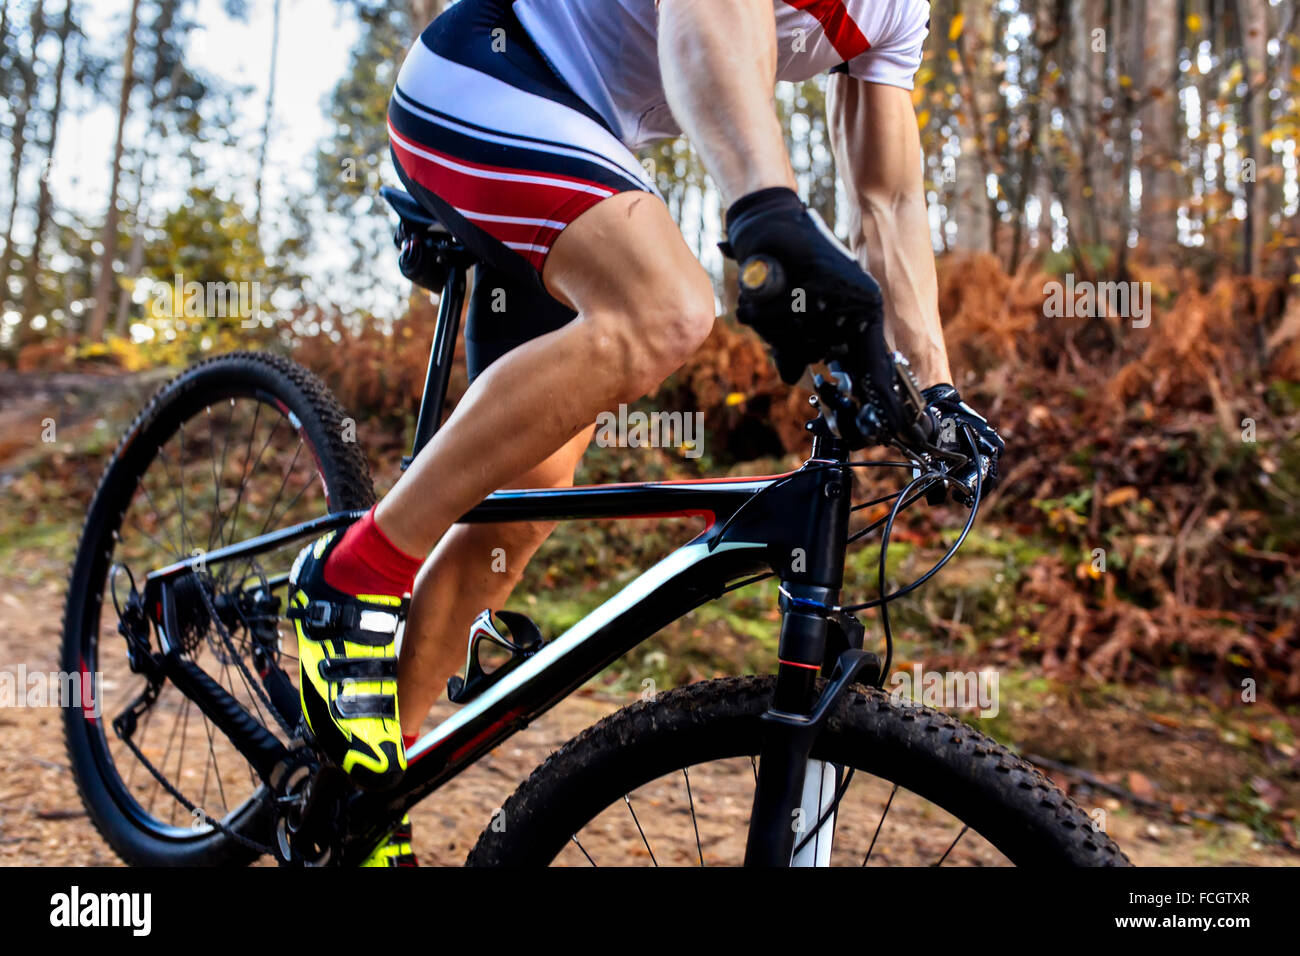 Mountain biker driving in the forest close-up - Stock Image